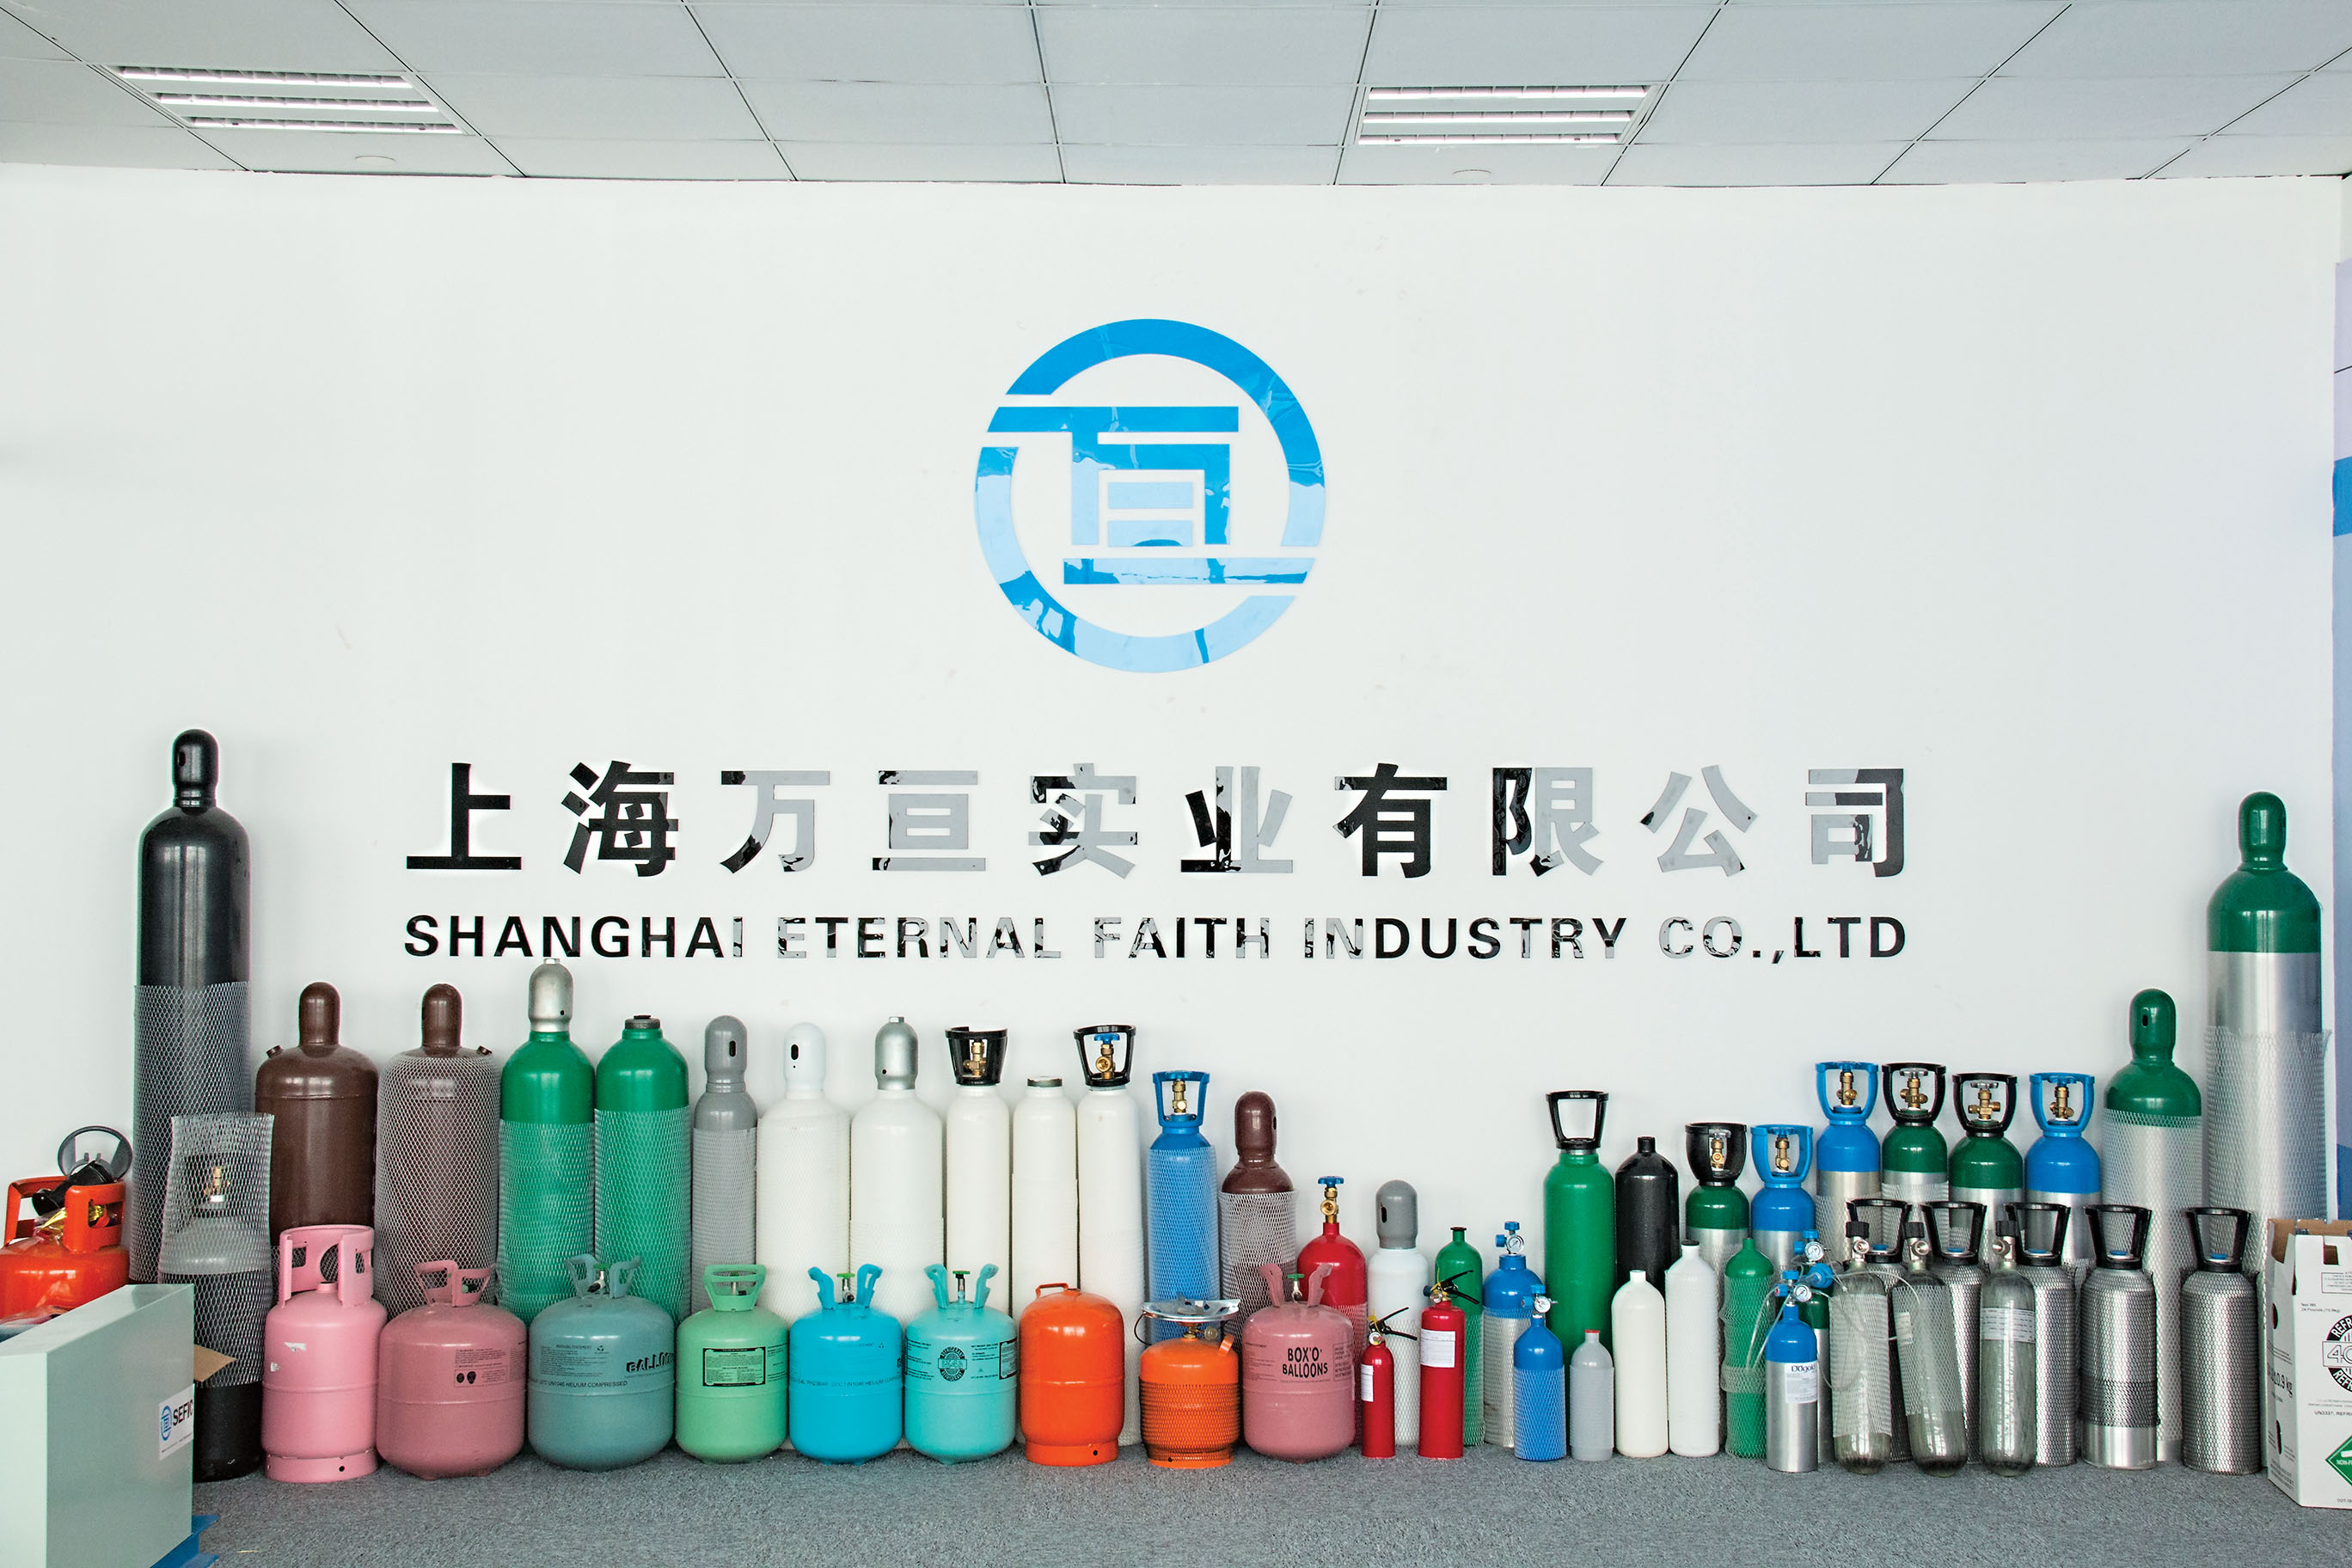 SHANGHAL ETERNAL FAITH INDUSTRY CO.,LTD.